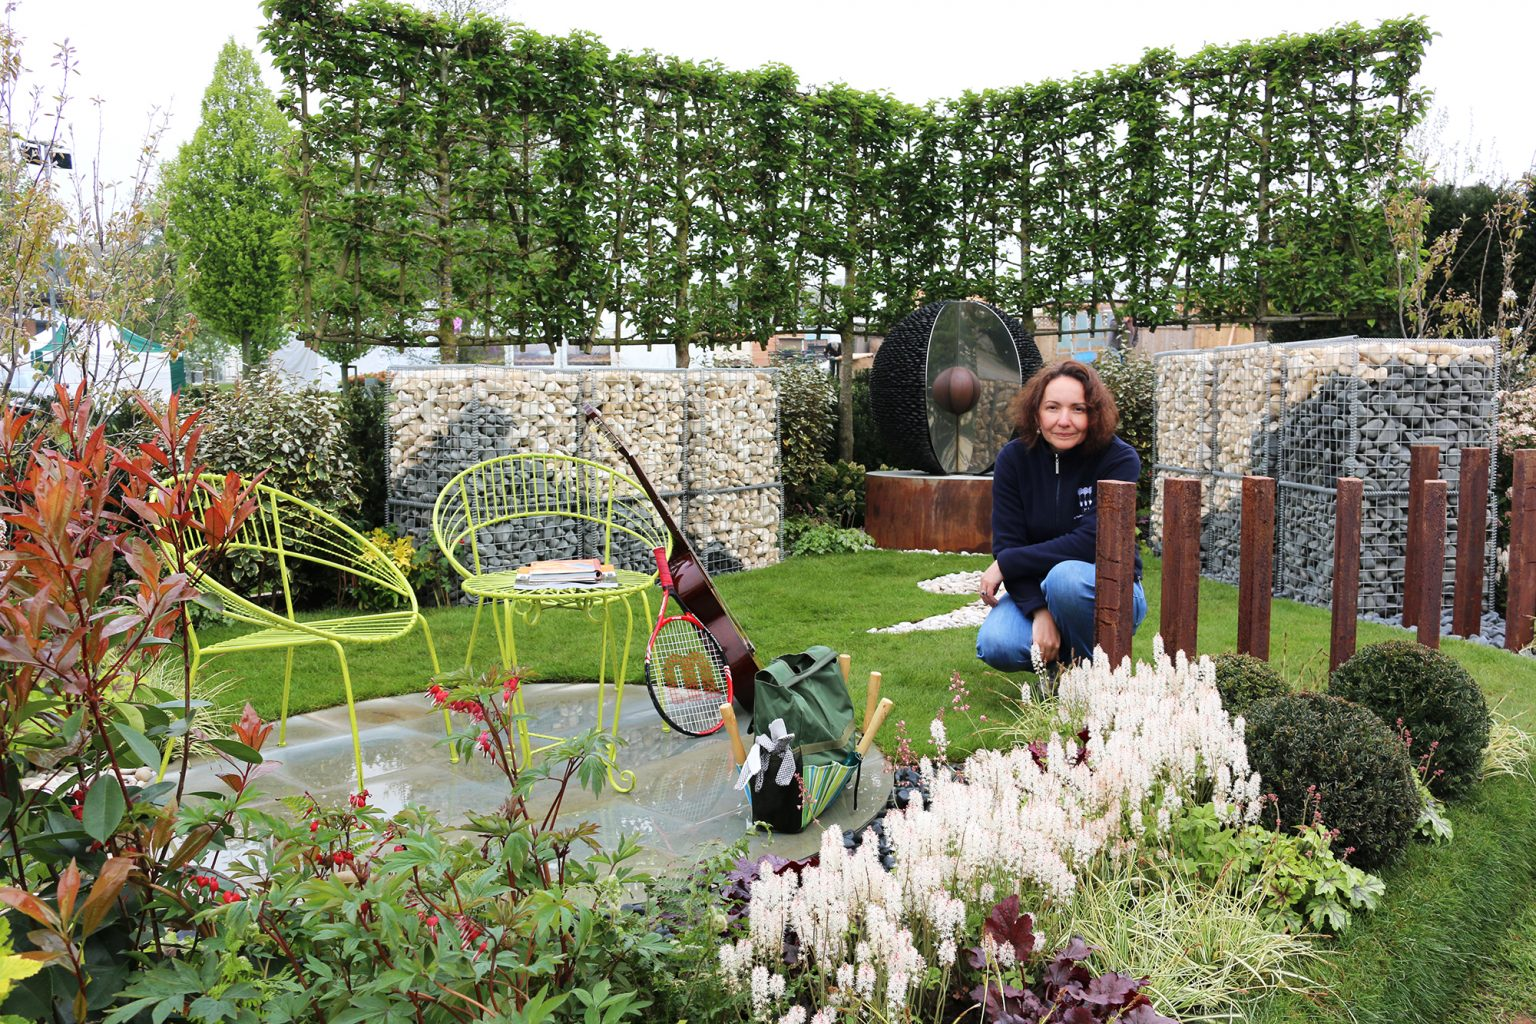 Mental health garden takes gold at Harrogate Flower Show